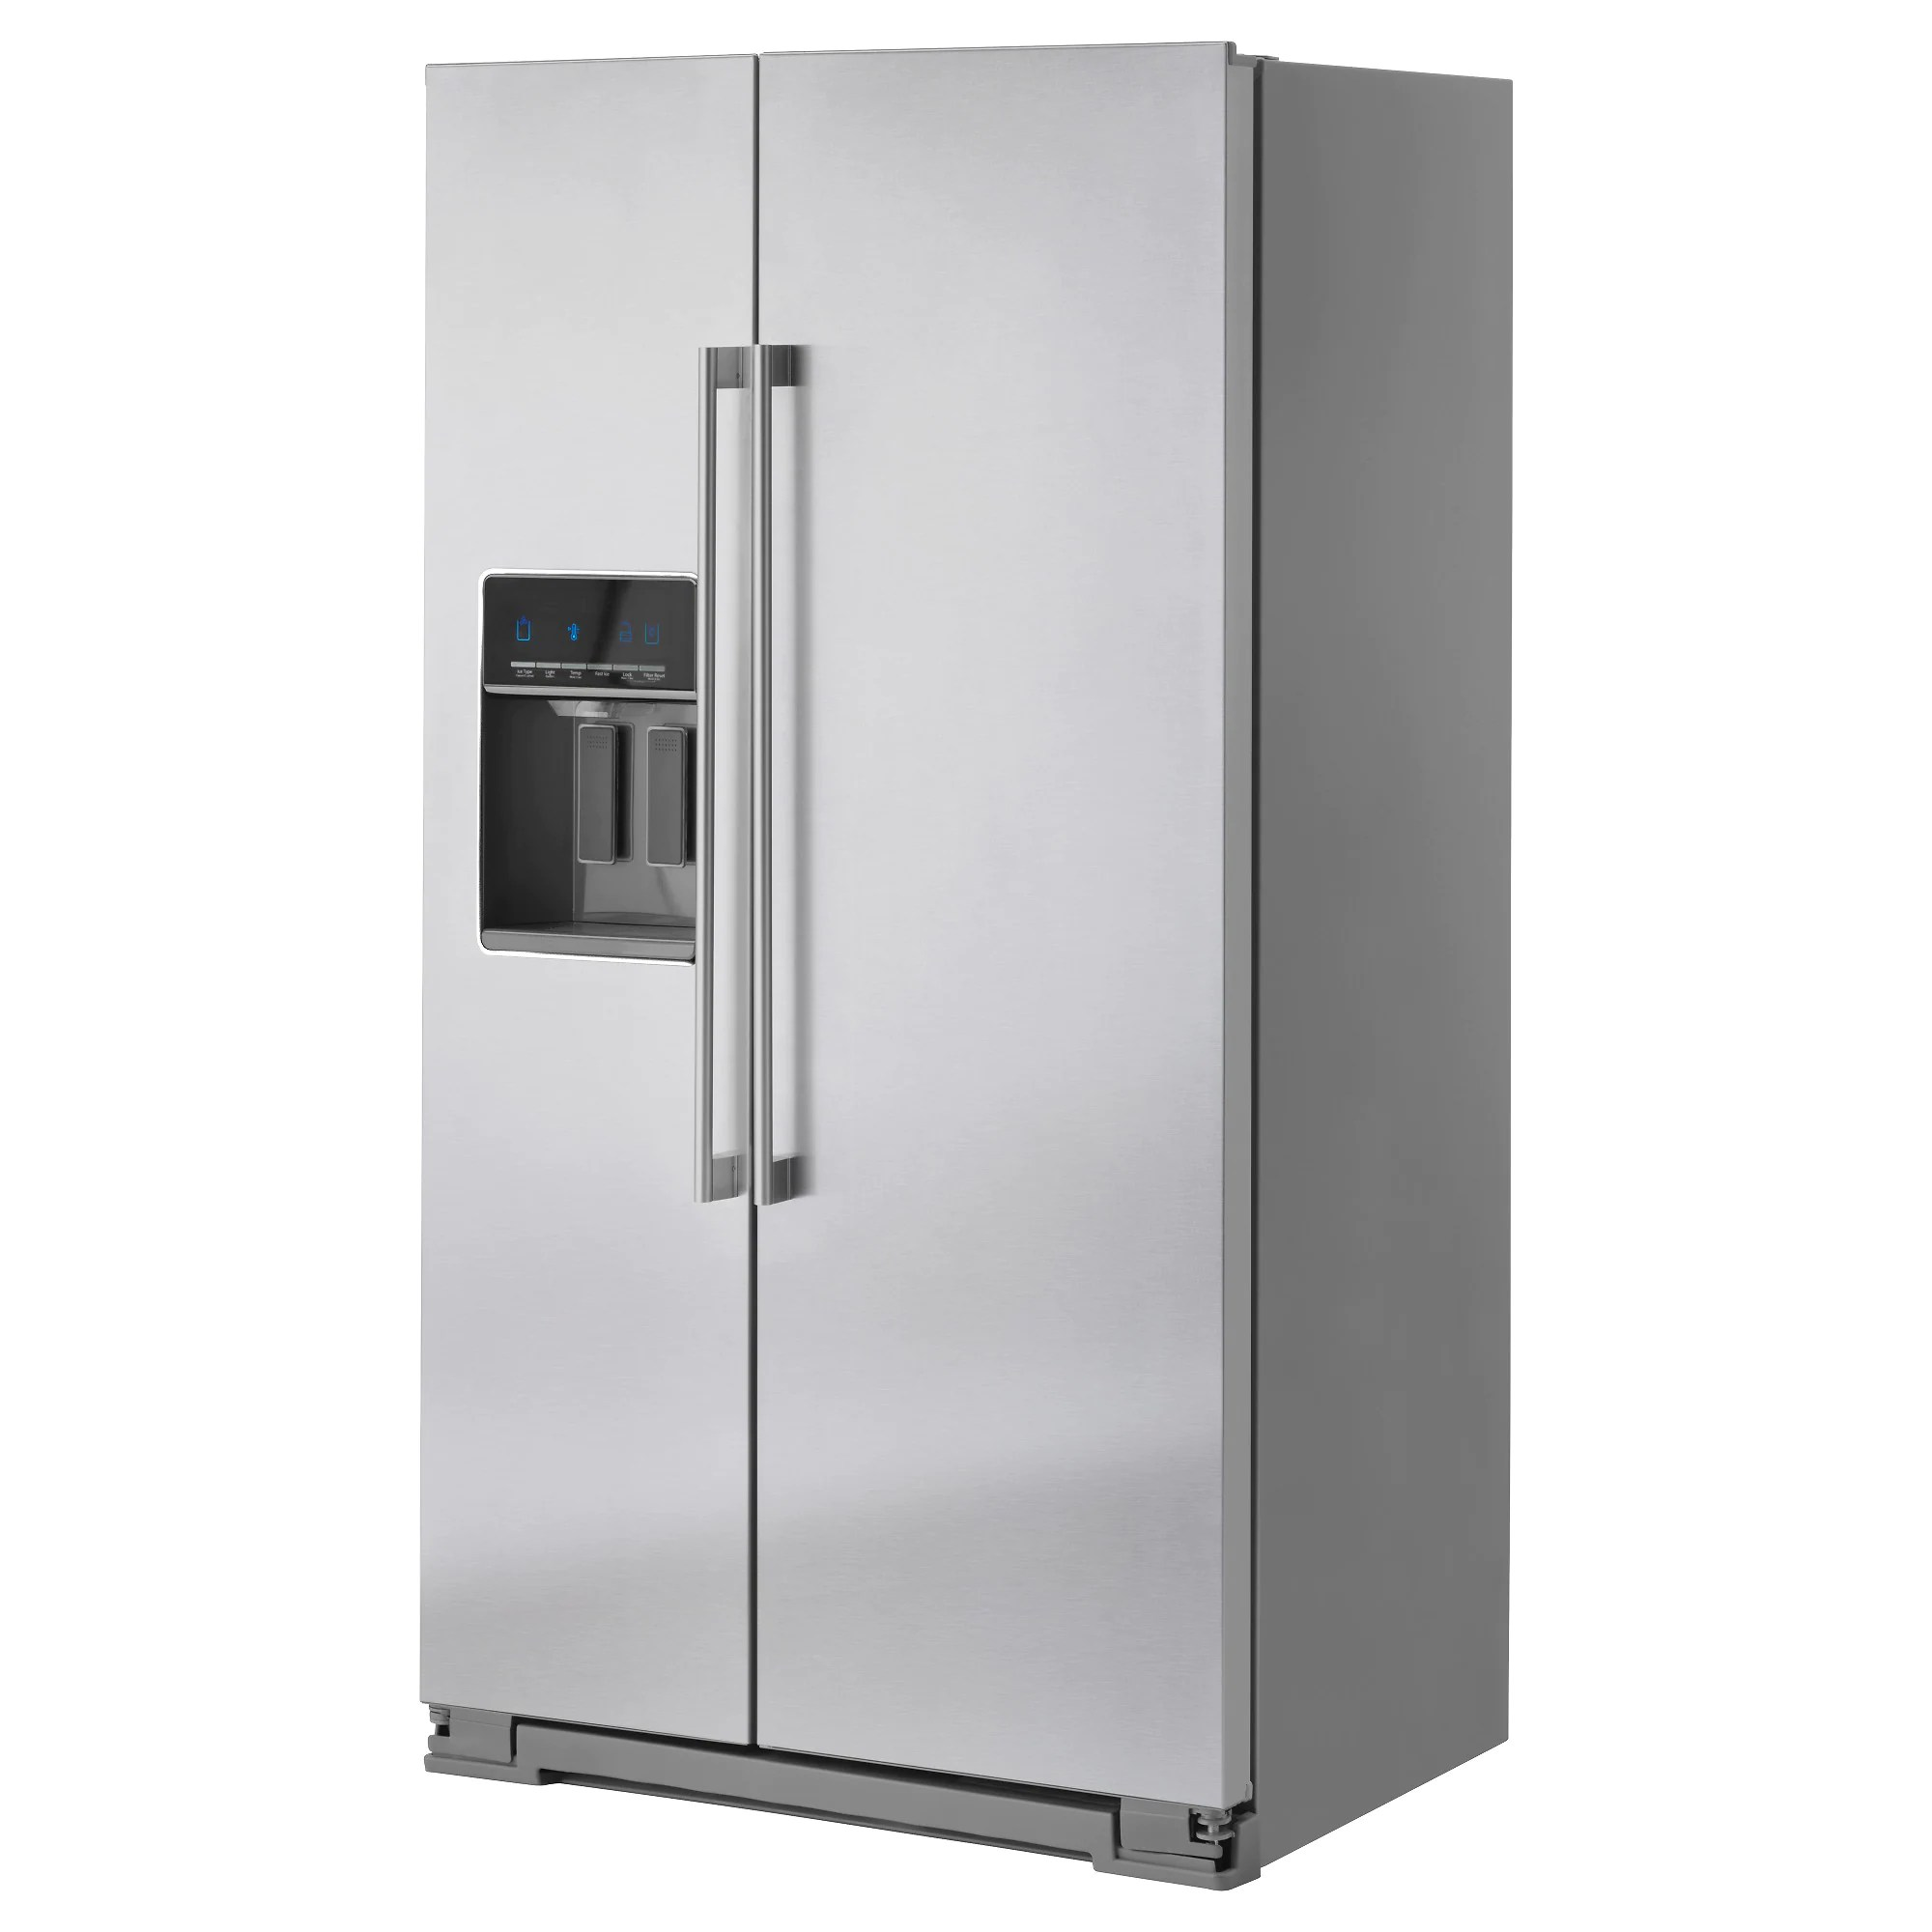 14 Cu Ft Refrigerator Nutid Side By Side Refrigerator Stainless Steel